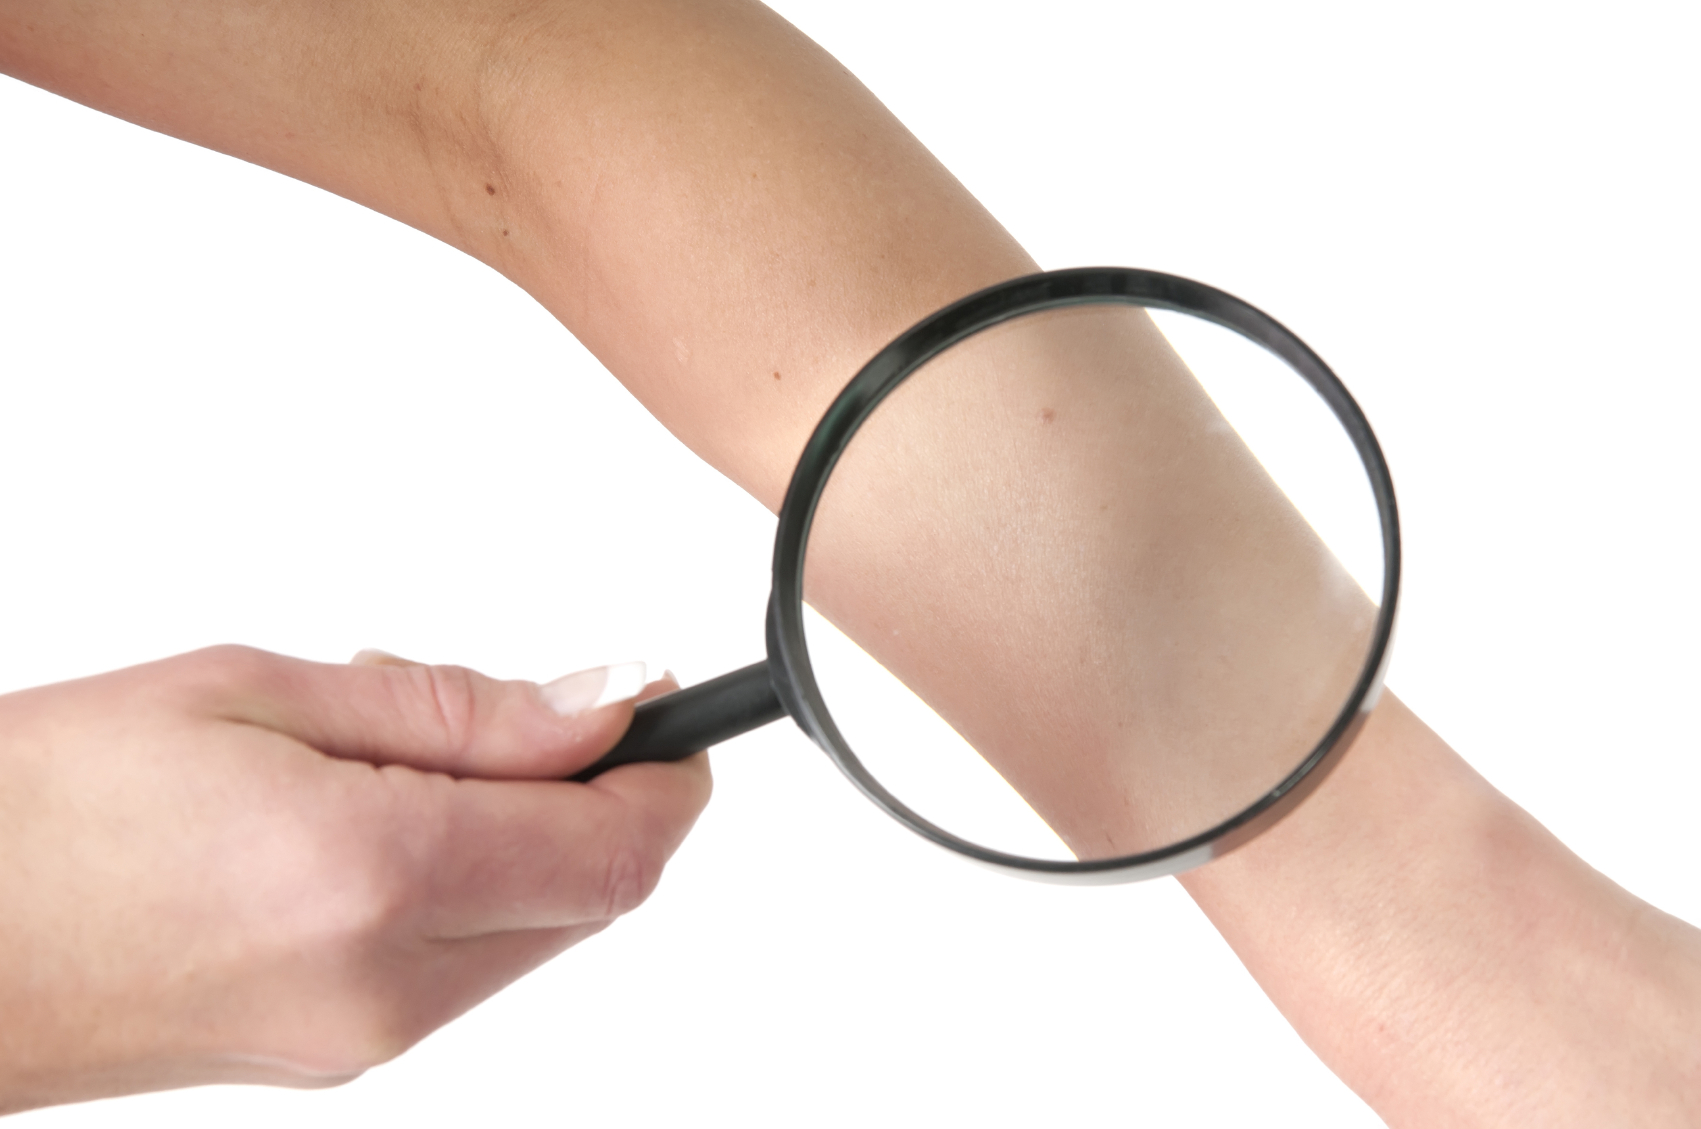 This simple at-home test reveals your risk of melanoma and other skin cancers.